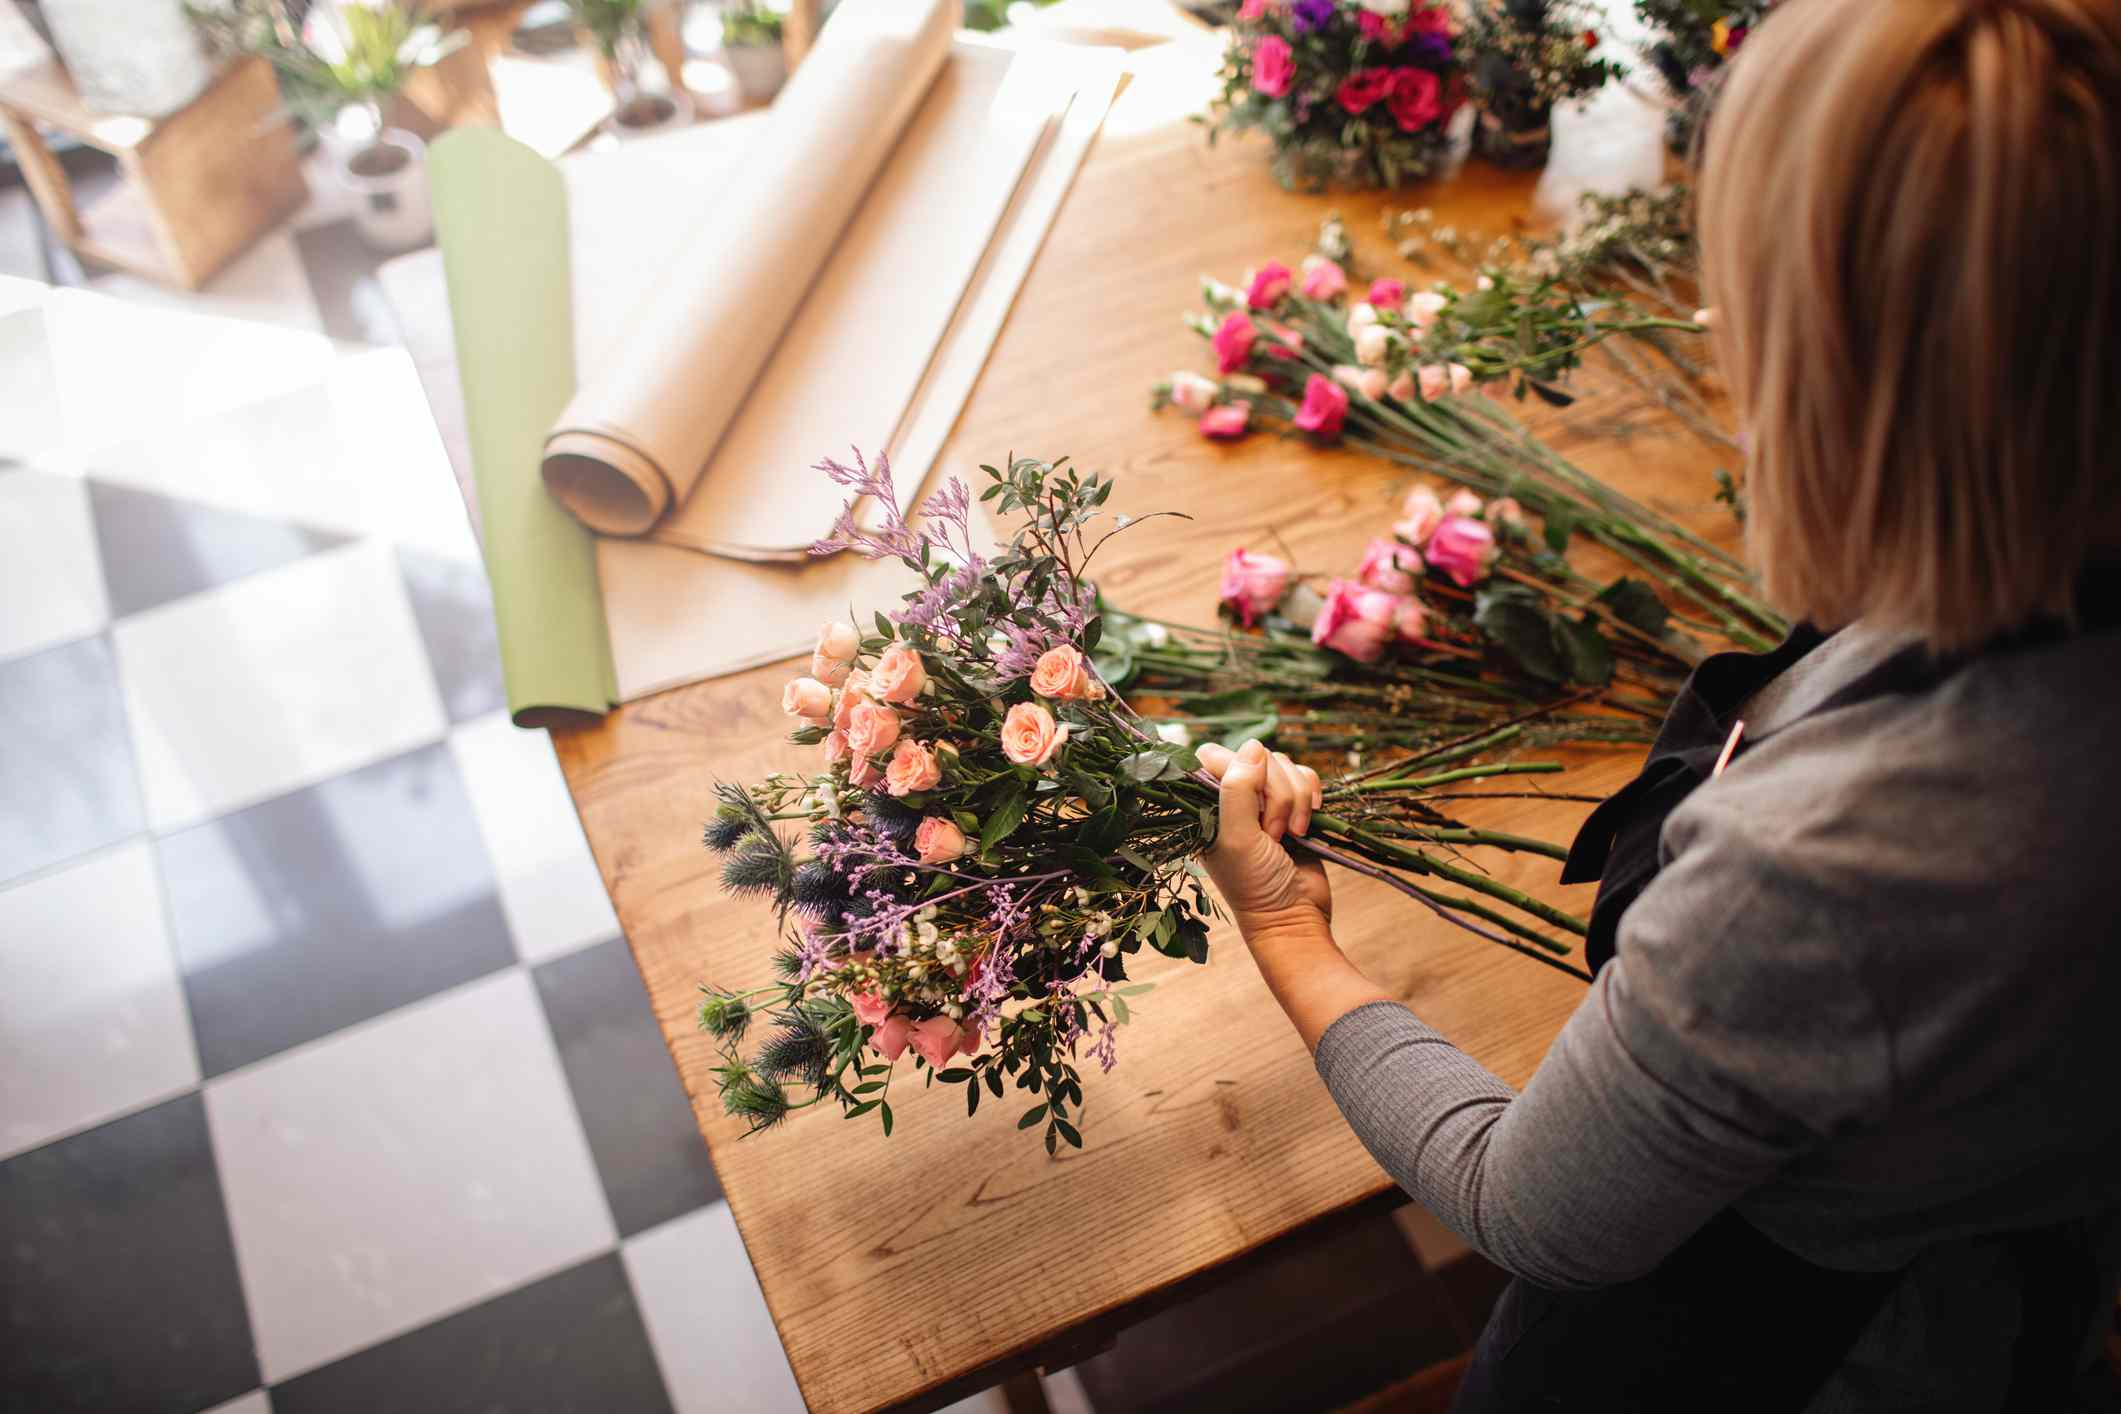 Woman wrapping flower bouquets in brown paper.